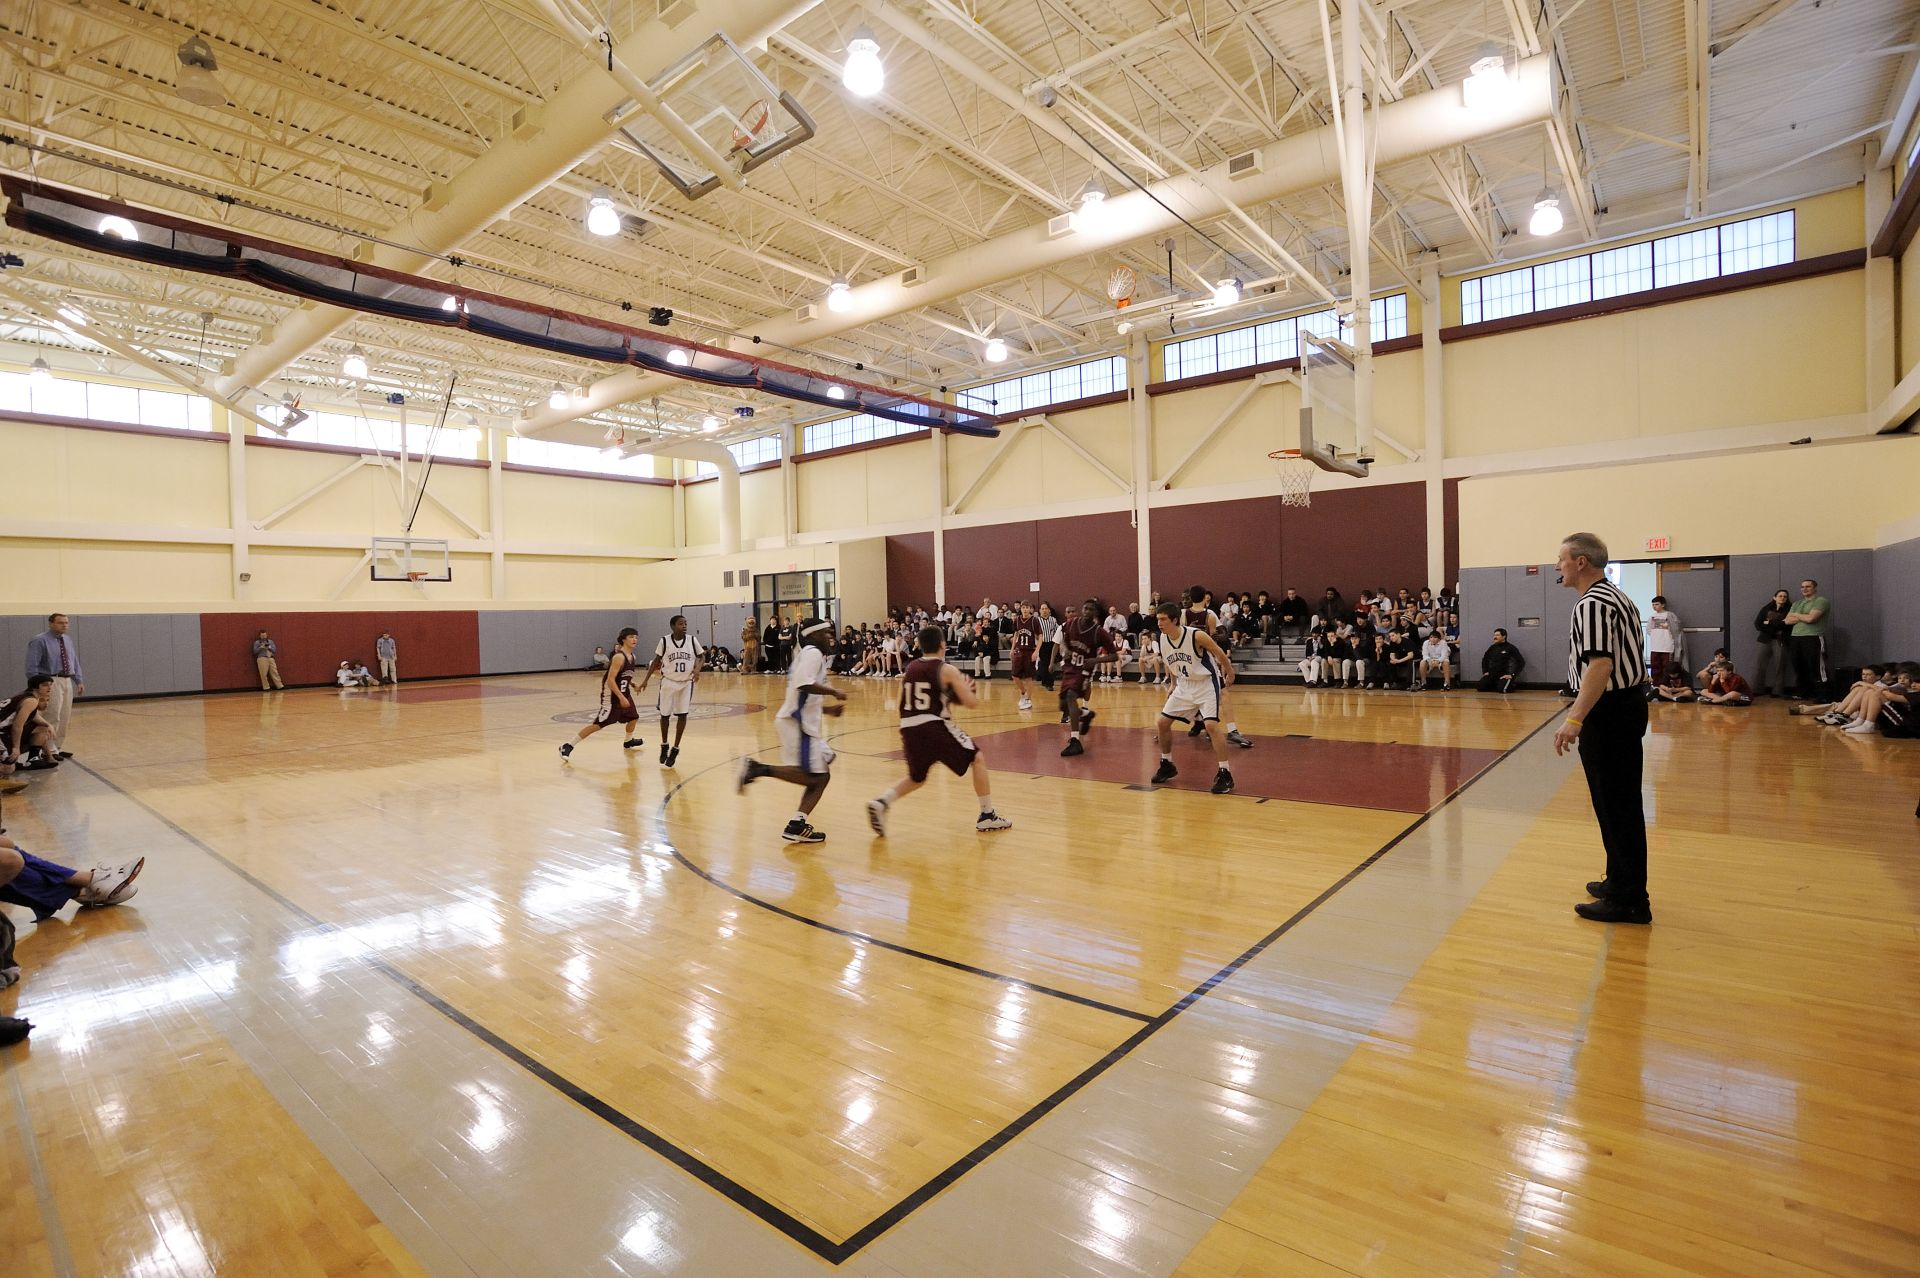 The Pallotta Athletic Center: Our state-of-the art athletic facility consists of two basketball gymnasiums, a wrestling room, athletic offices, athletic trainer